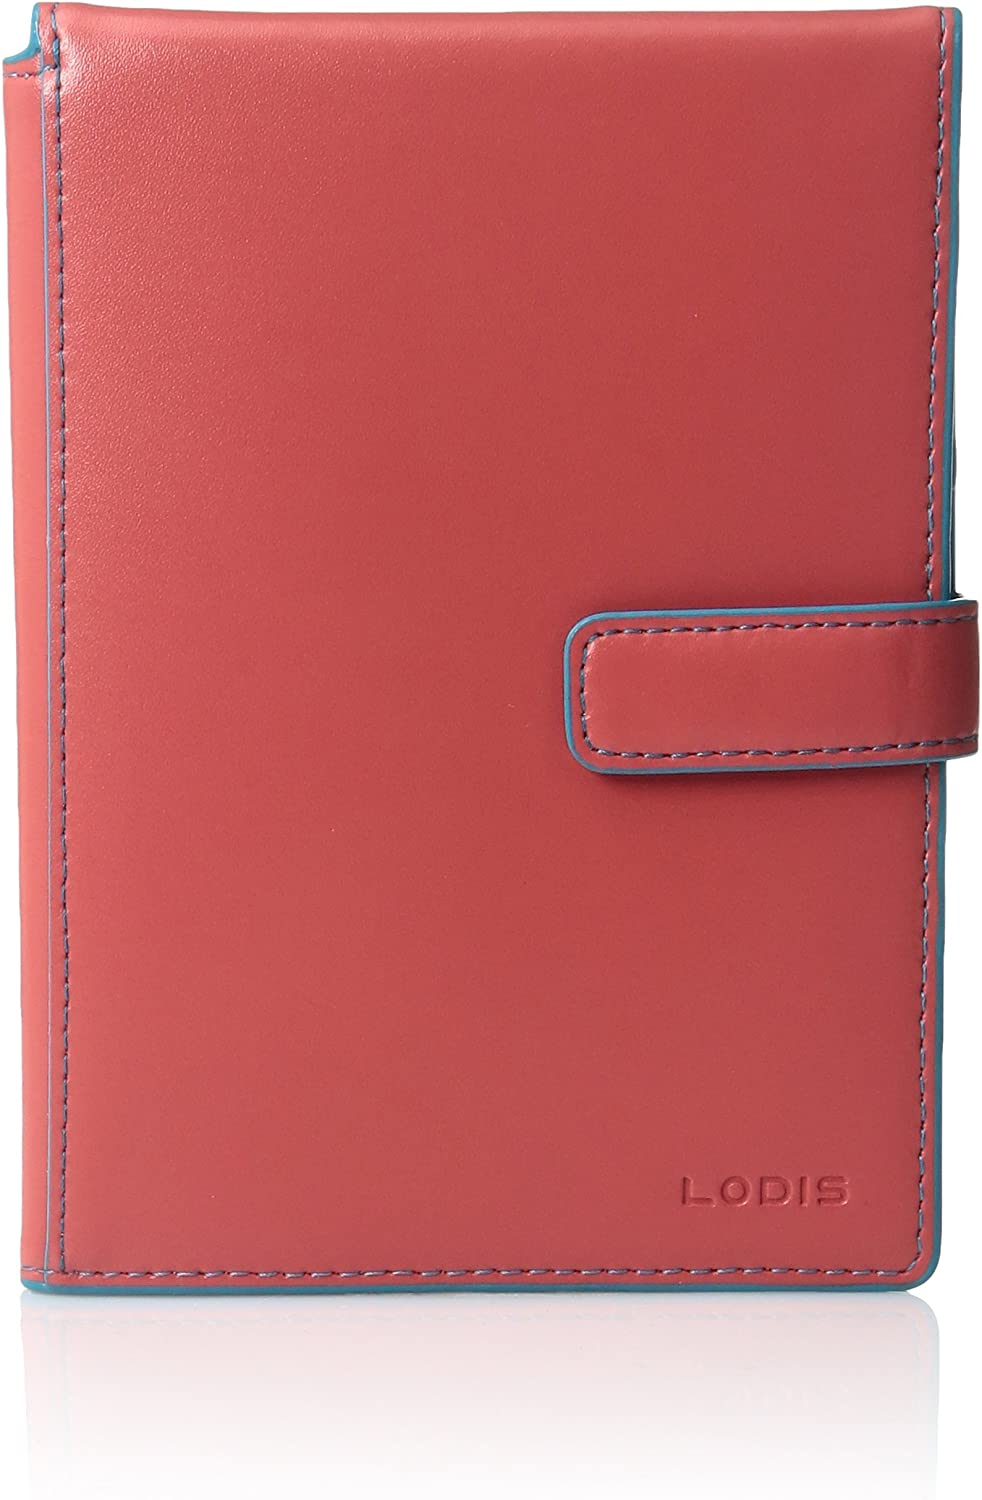 Lodis Audrey Pportwltwtktflp Cts Pass Case, Coral Turquoise, One Size